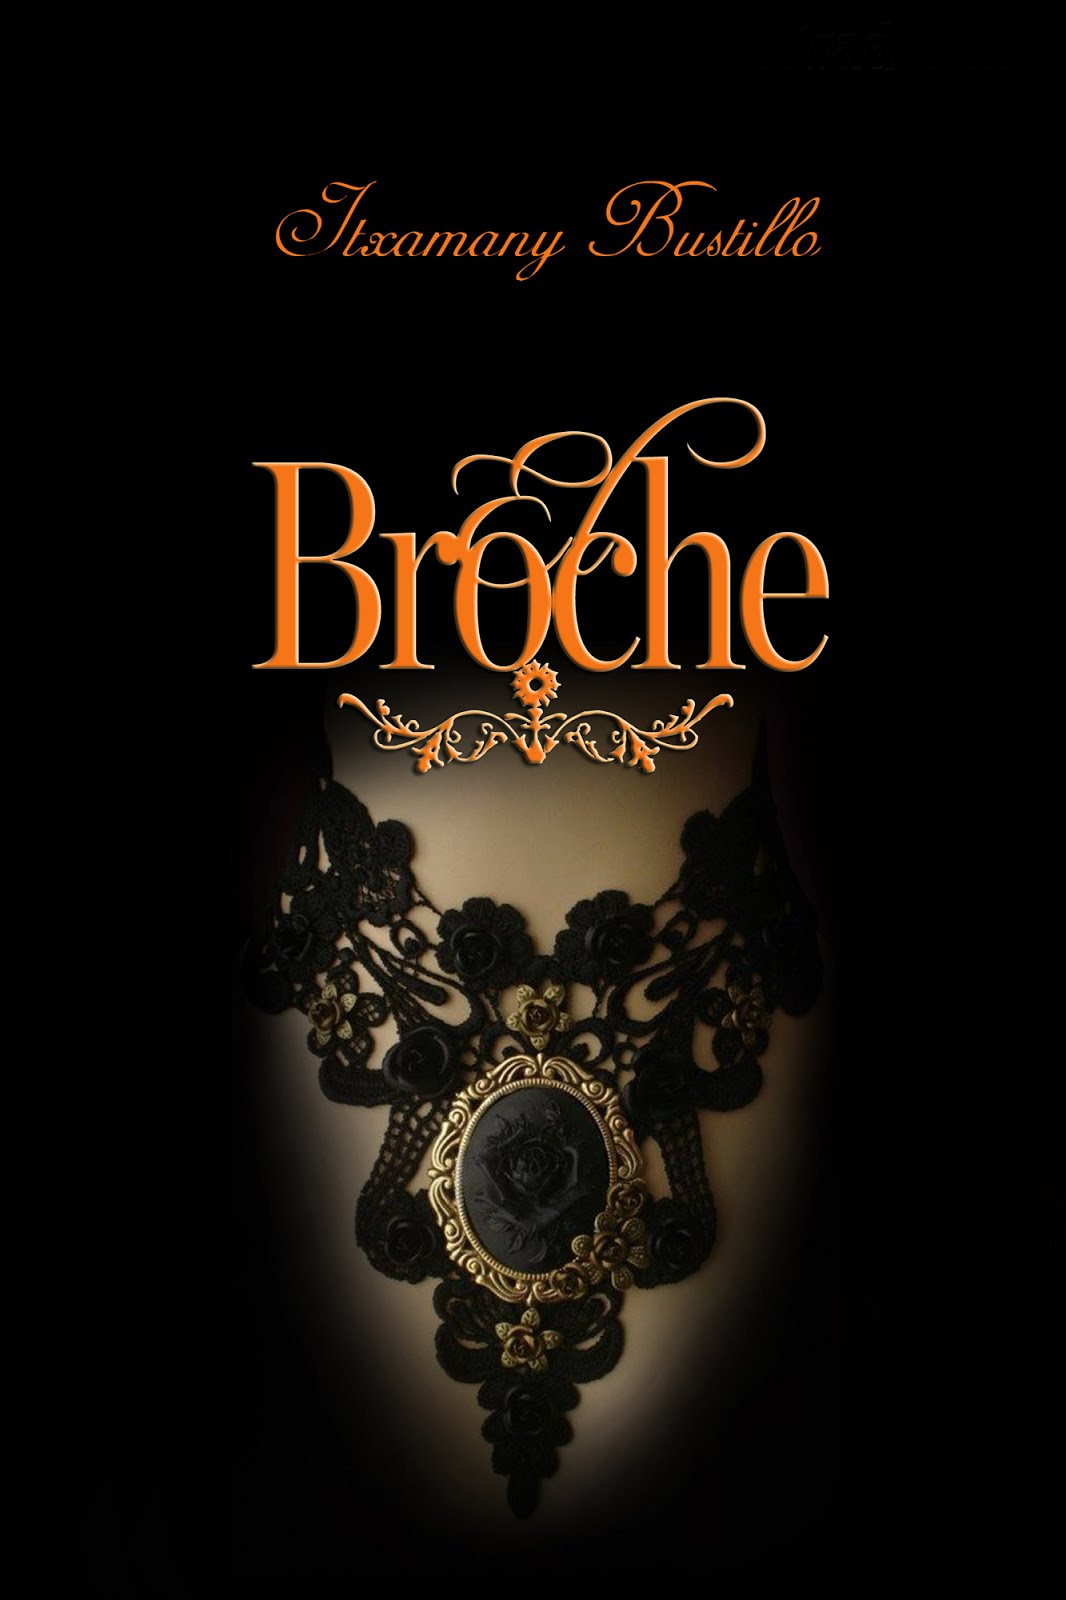 El Broche en Createspace